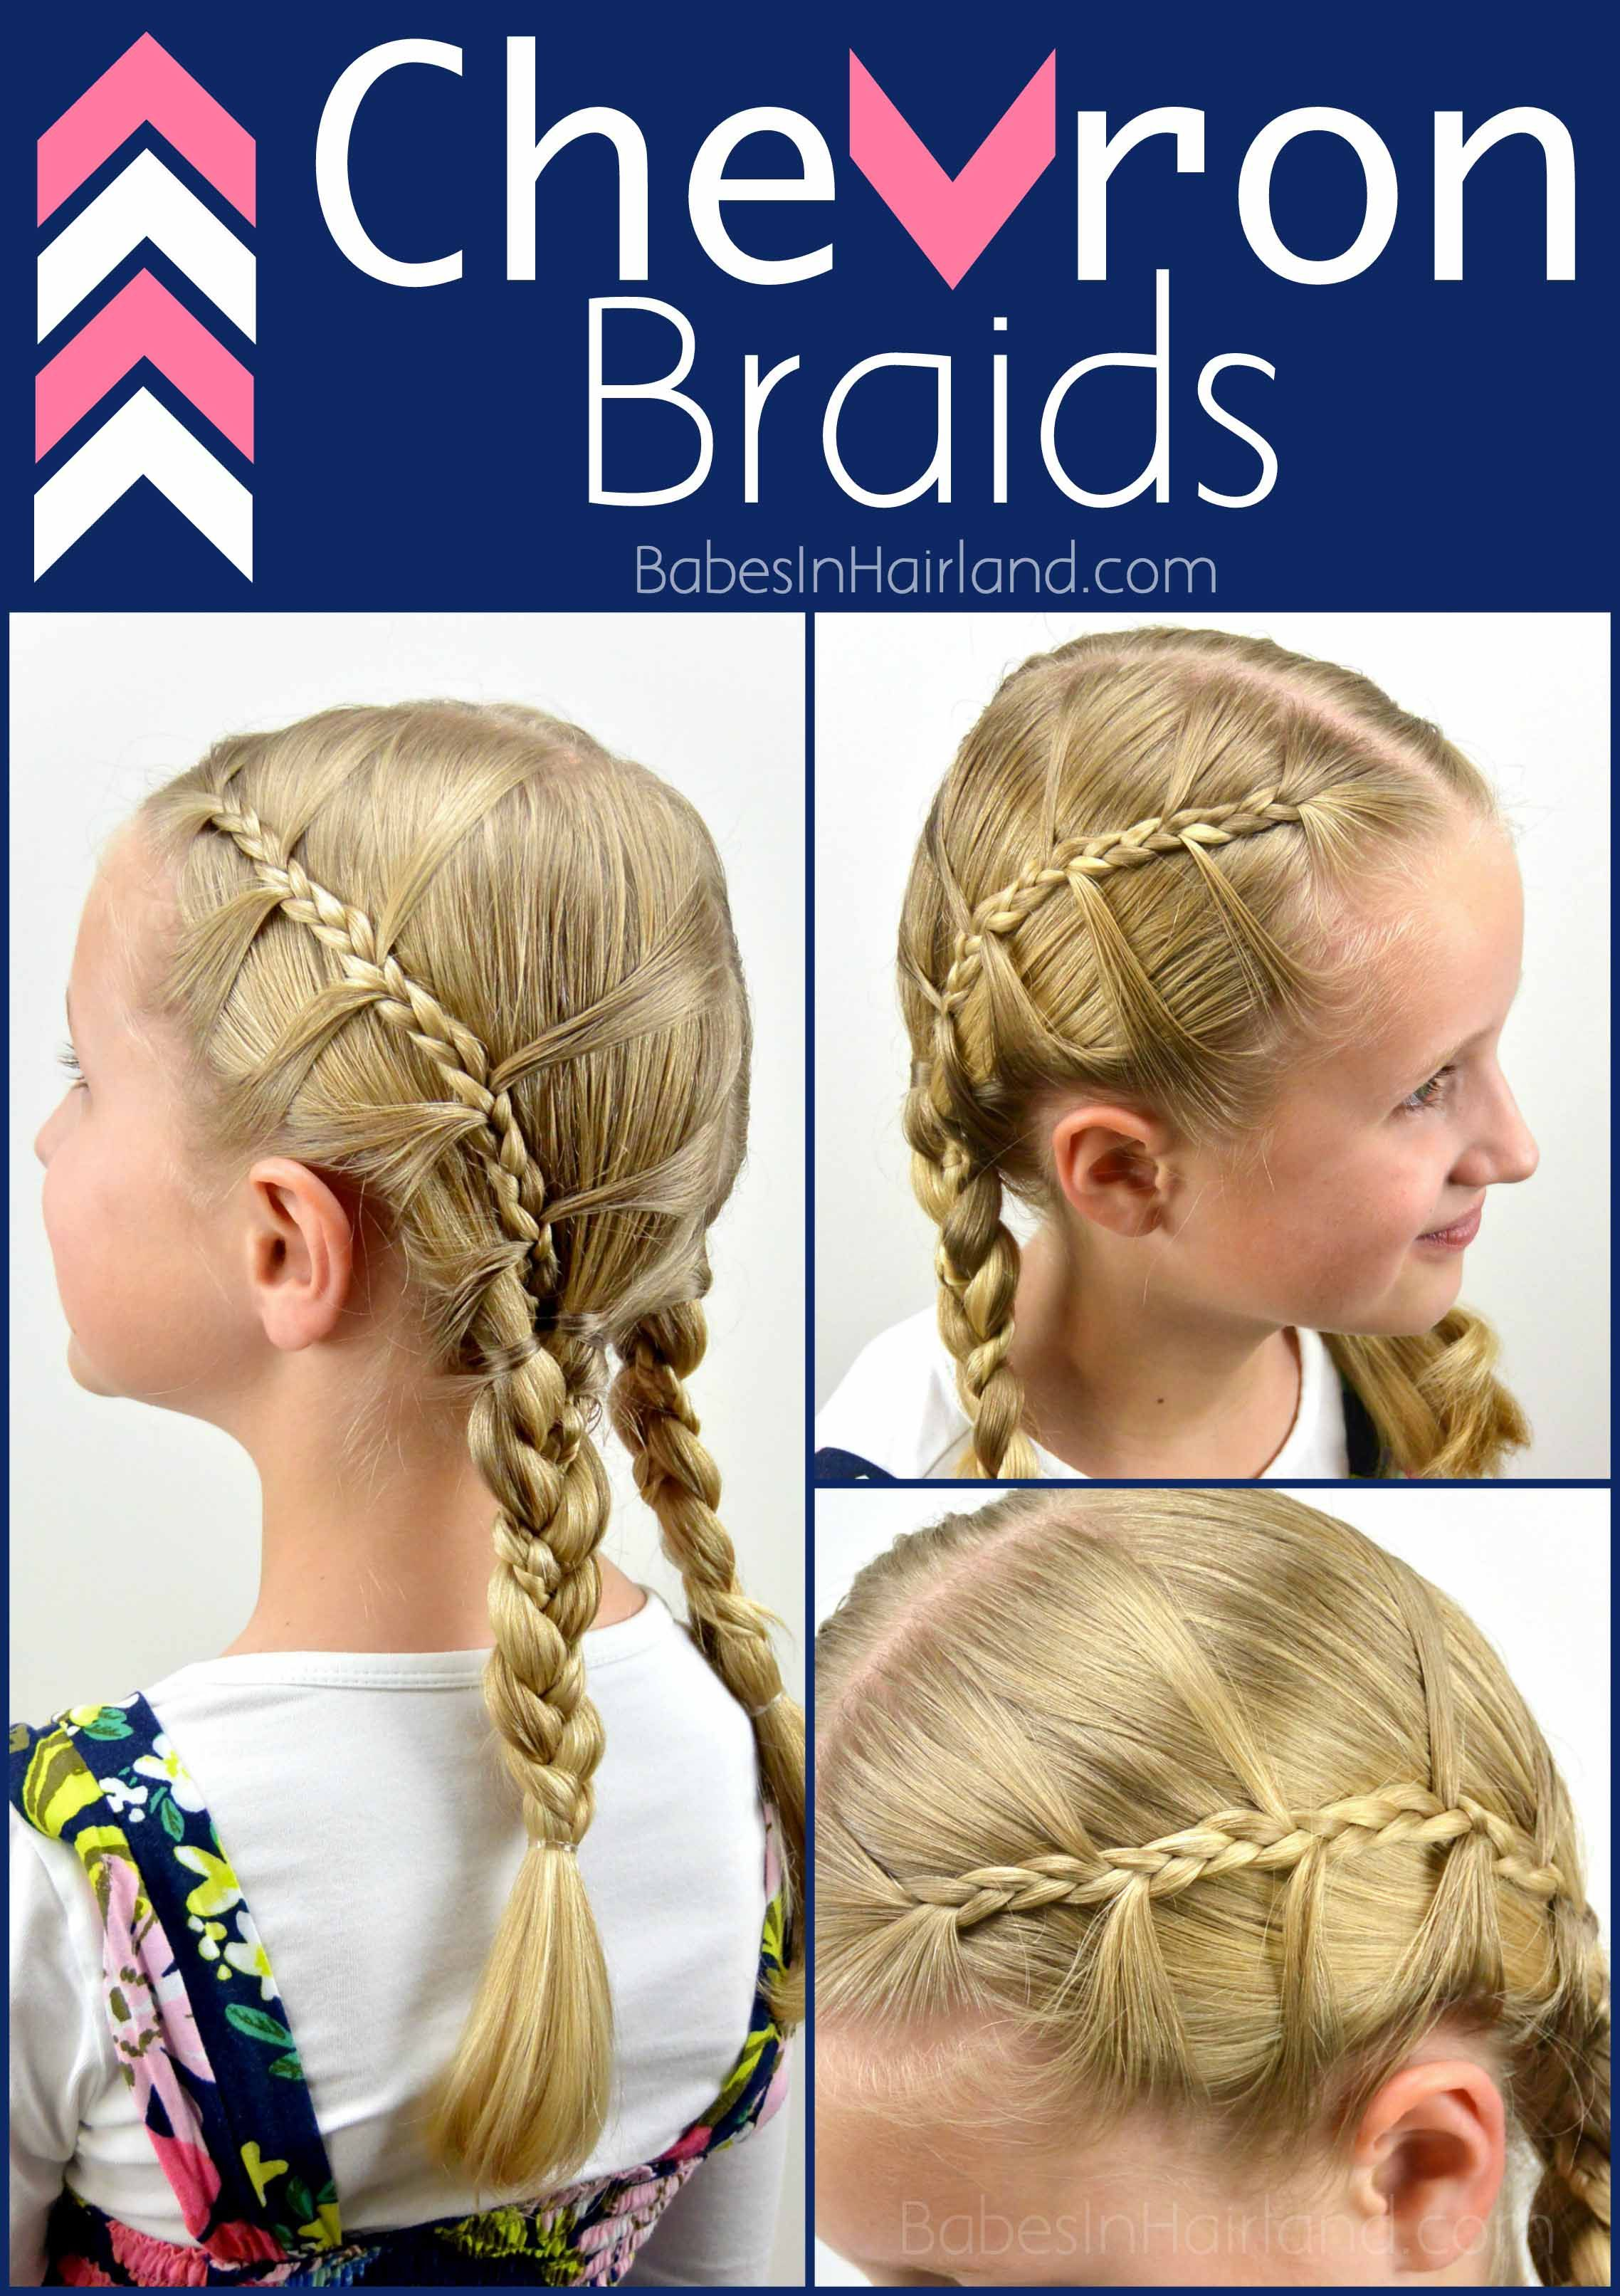 Chevron braids hairstyles pinterest hair style girl hair and